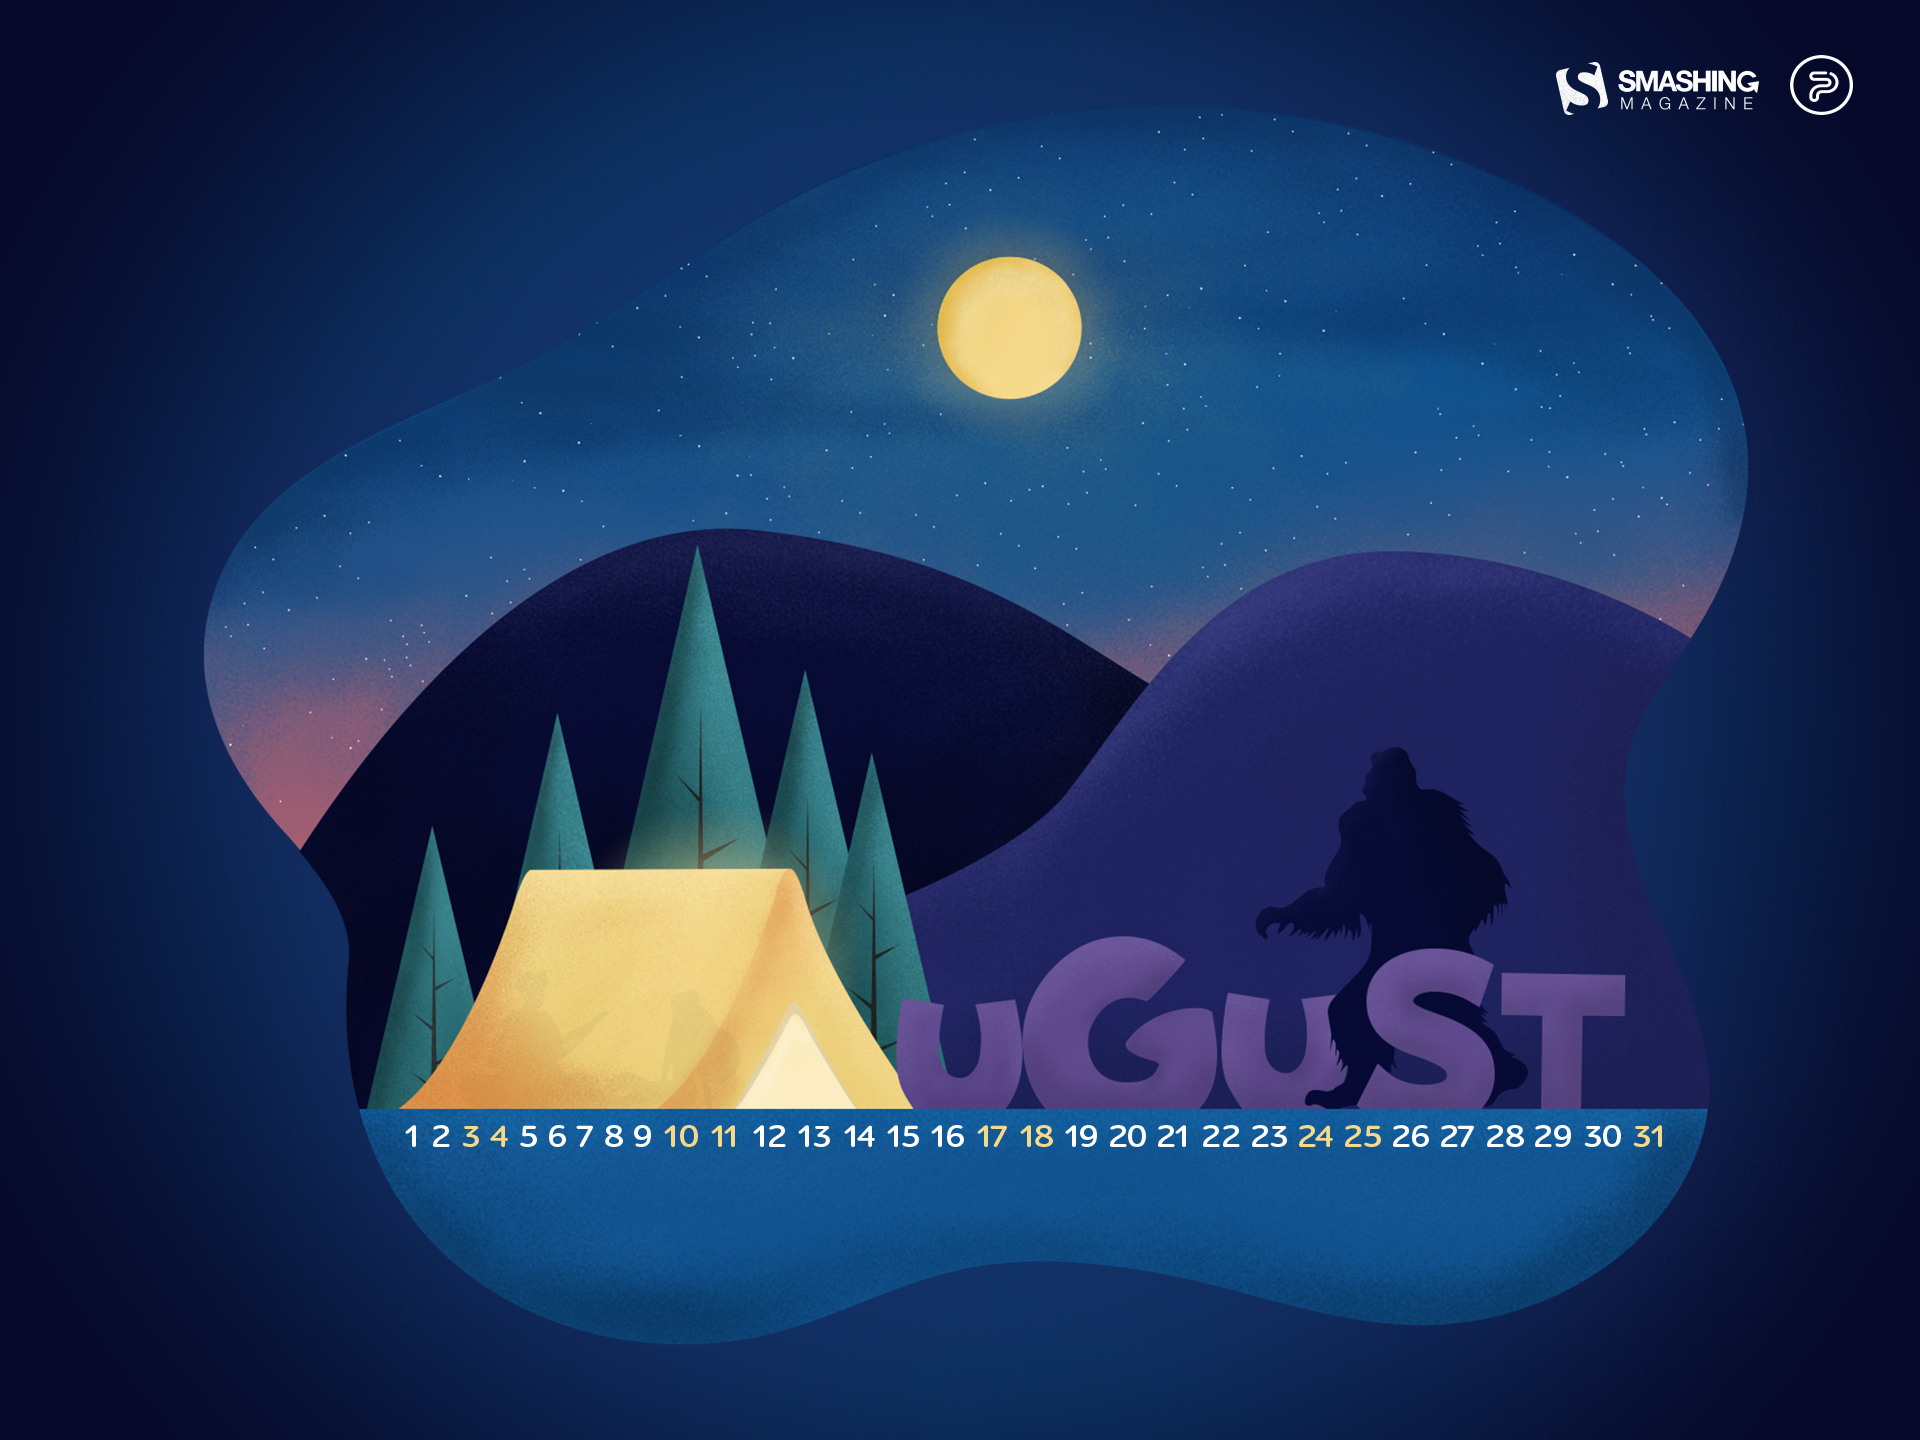 Adventures In August 2019 Wallpapers Edition Smashing